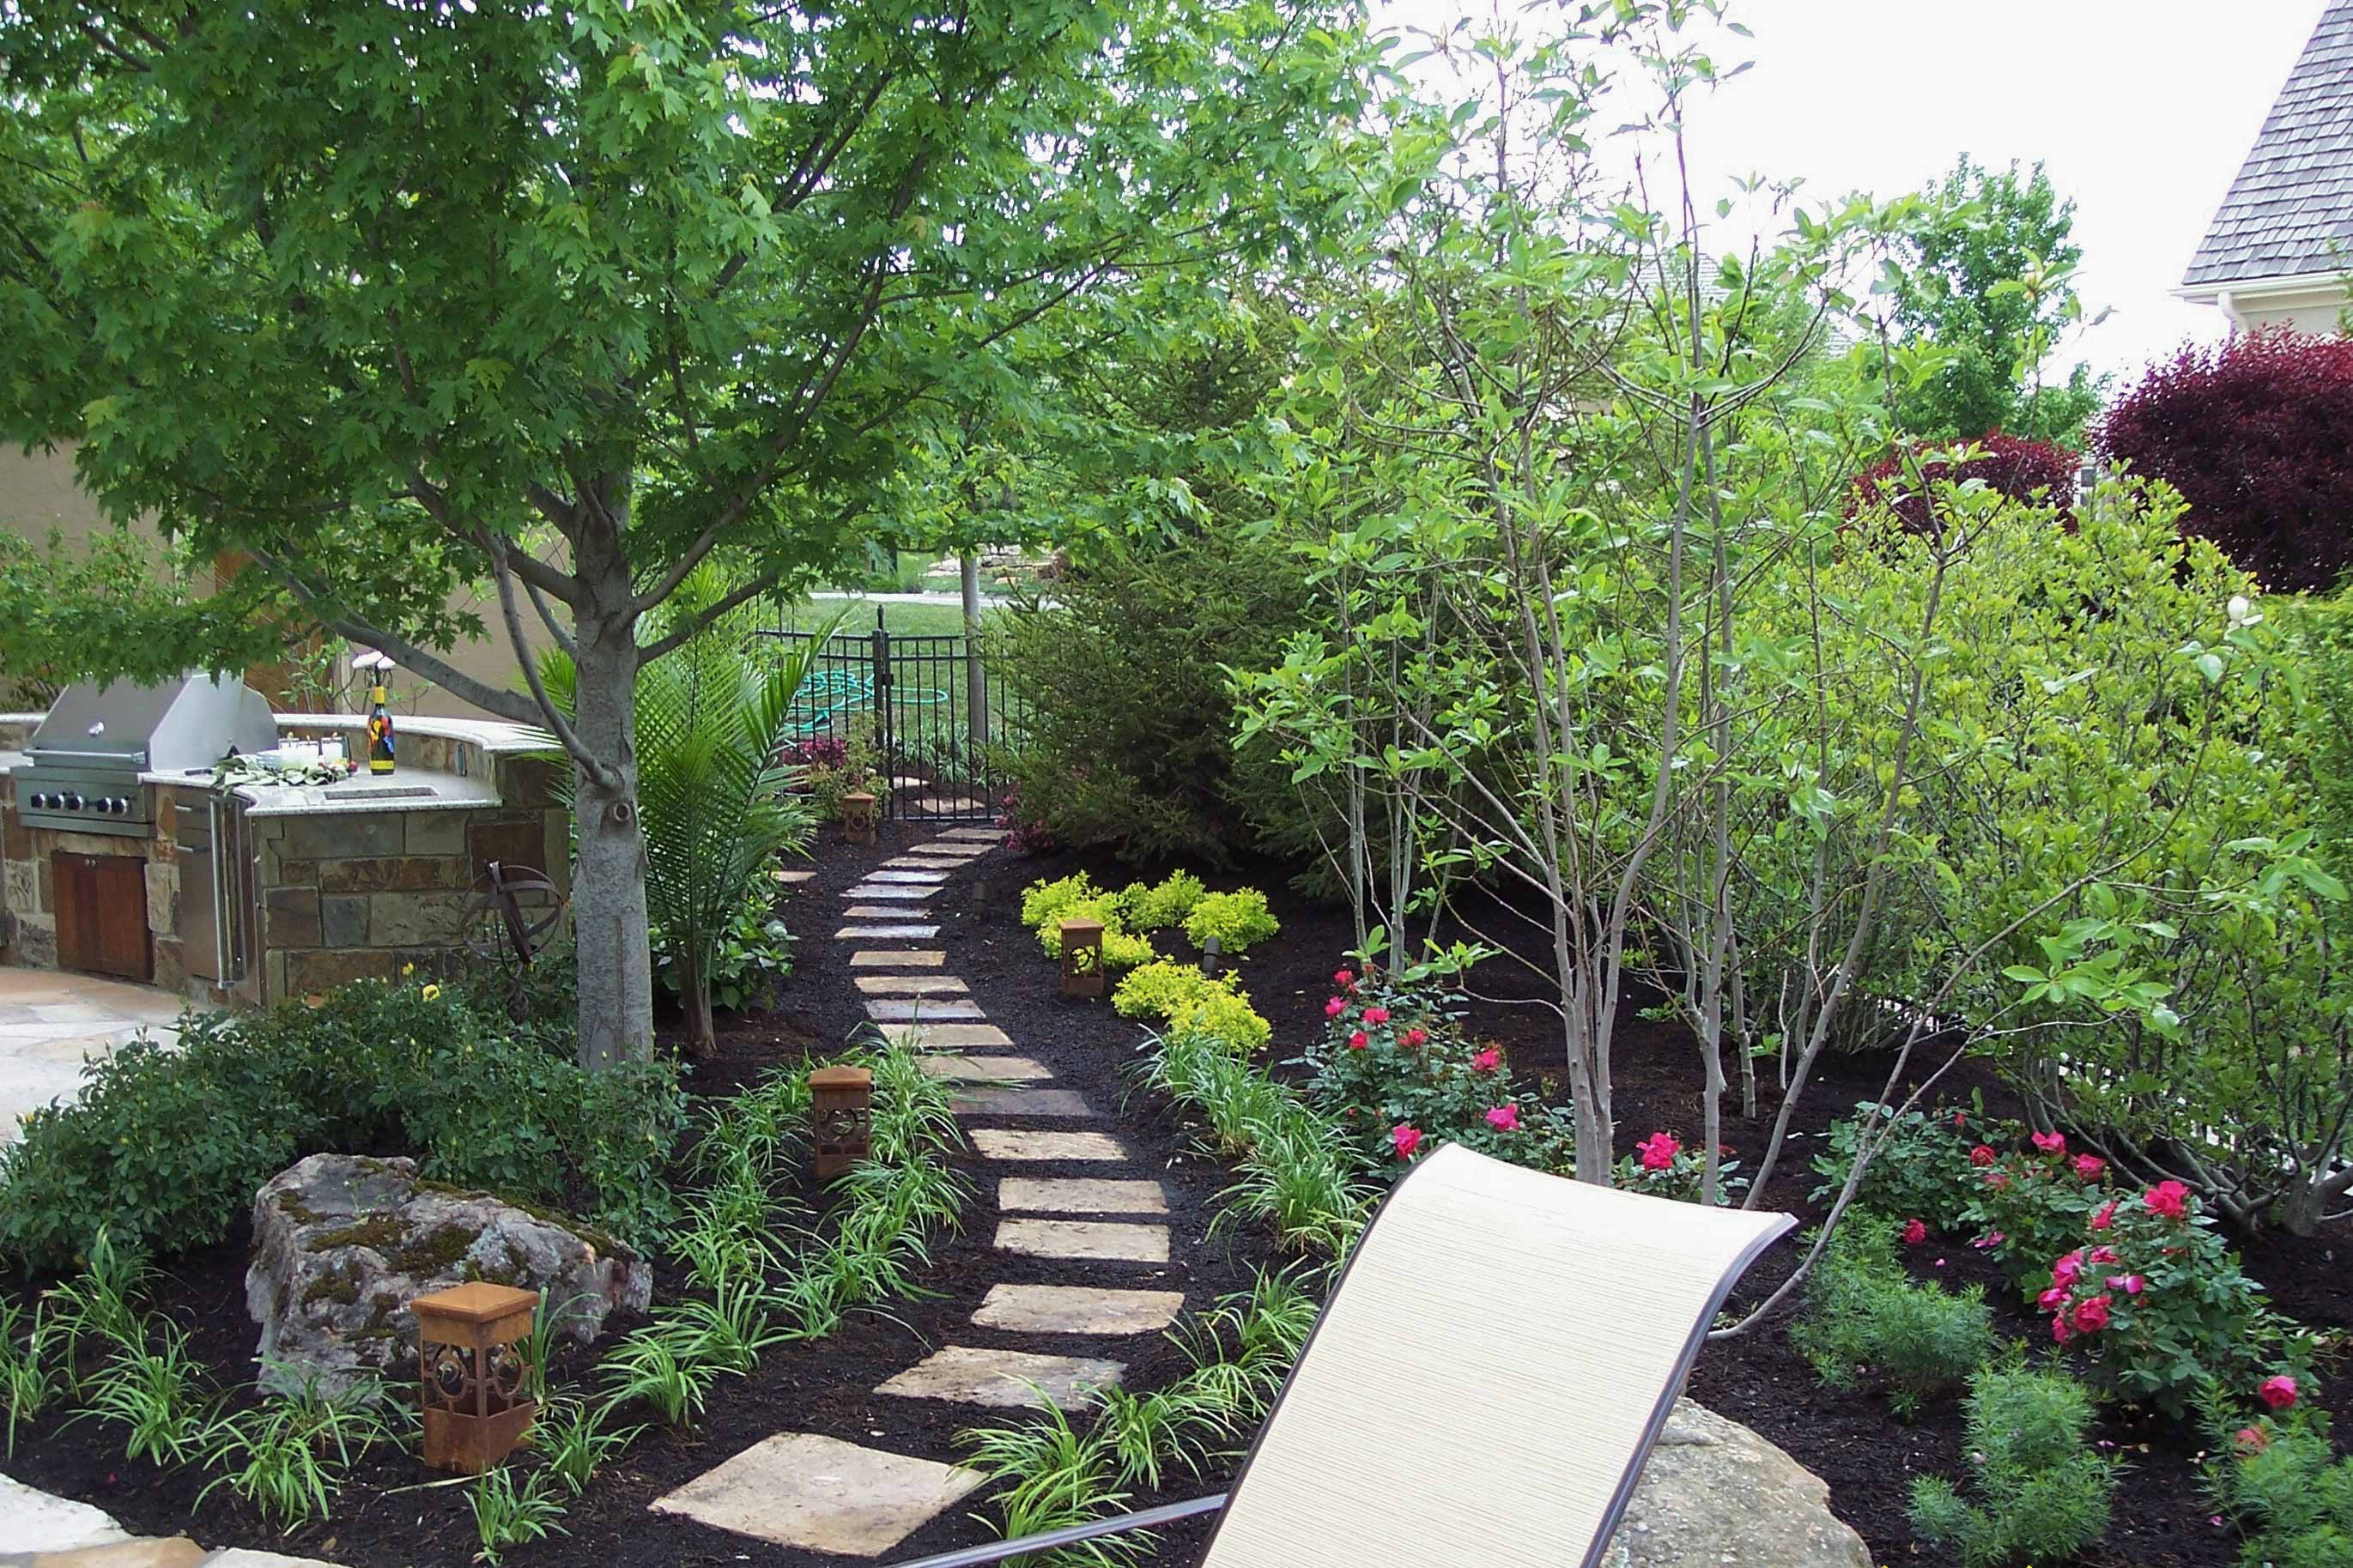 Breathtaking Walkway & Patio Designs - Rosehill Gardens - Kansas City